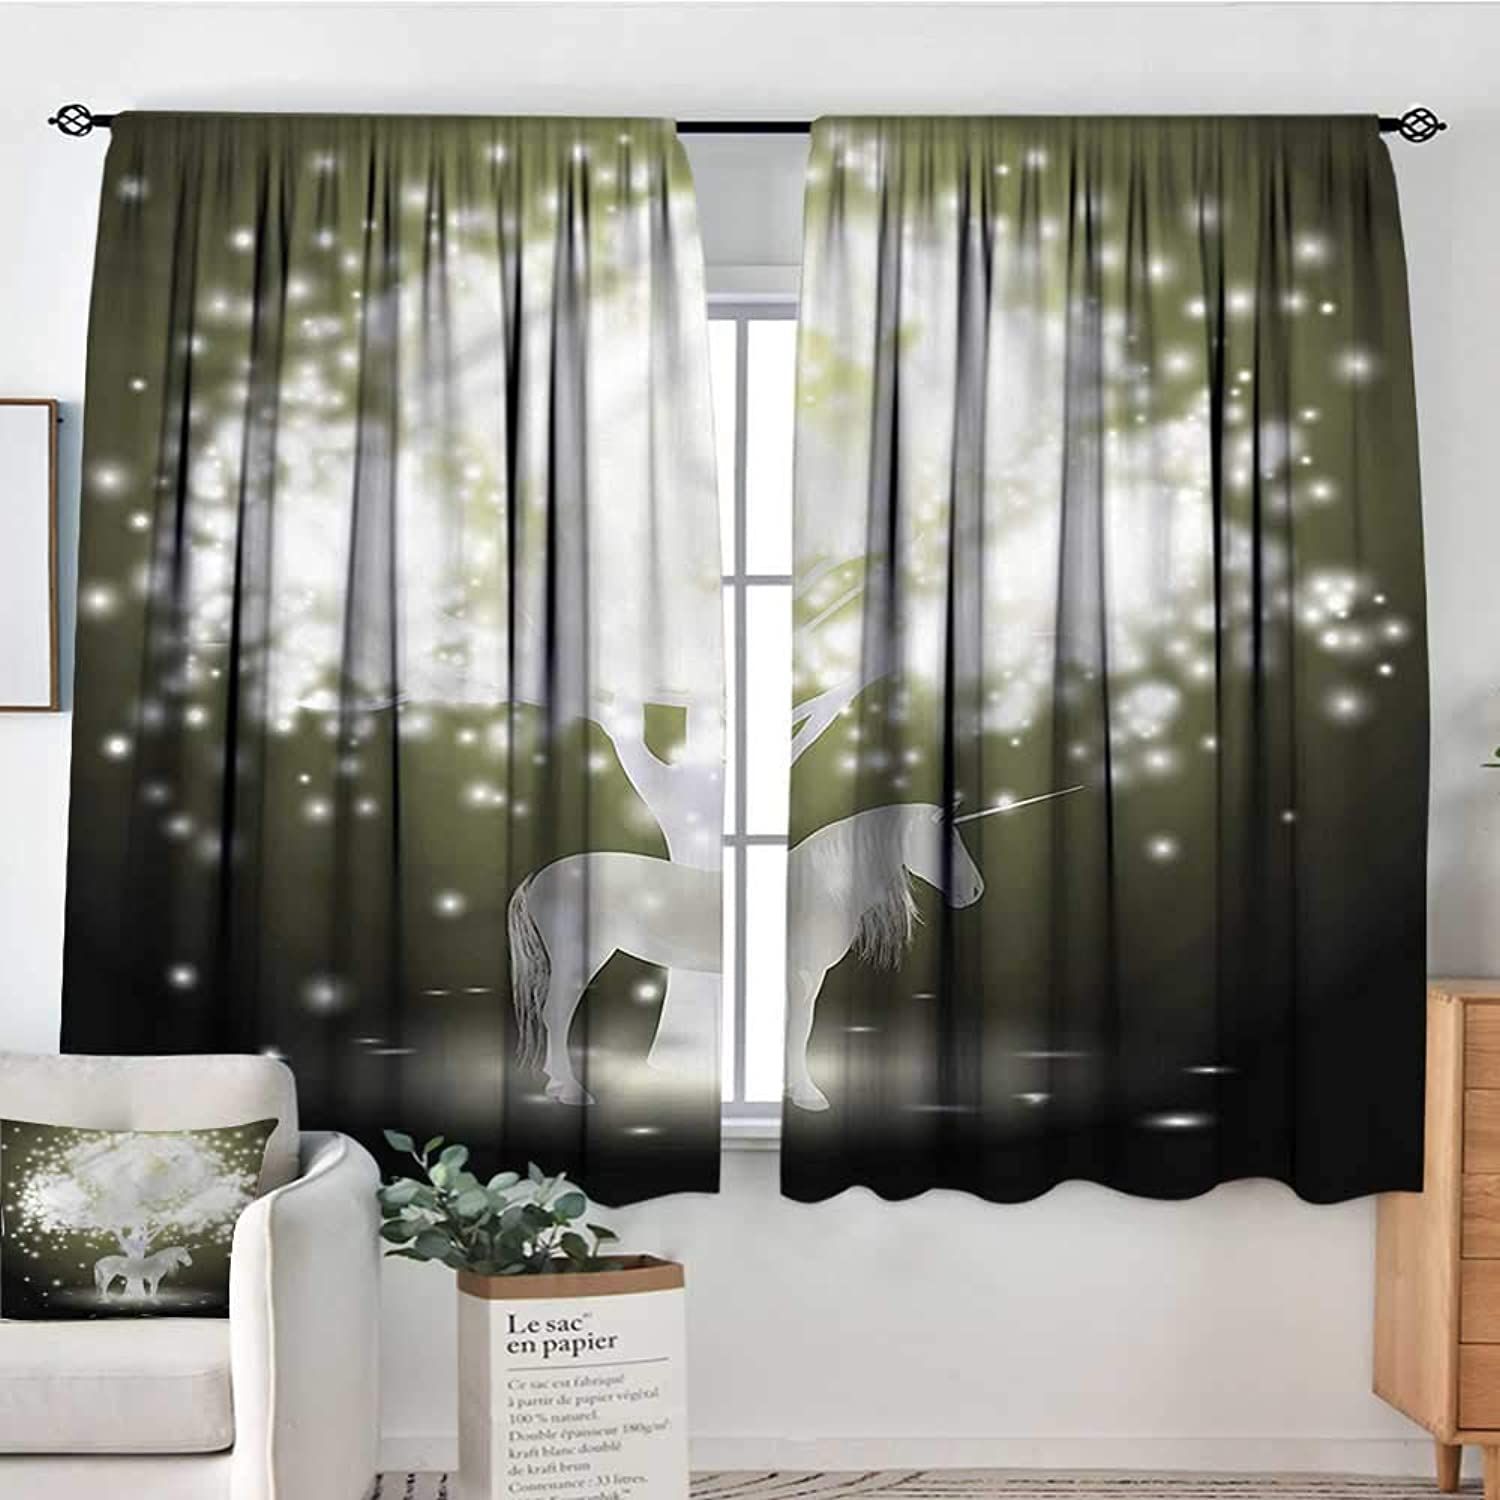 Sanring Magic,Curtain rods Unicorn Horse with Tree 52 x63  Backout Draperies for Bedroom